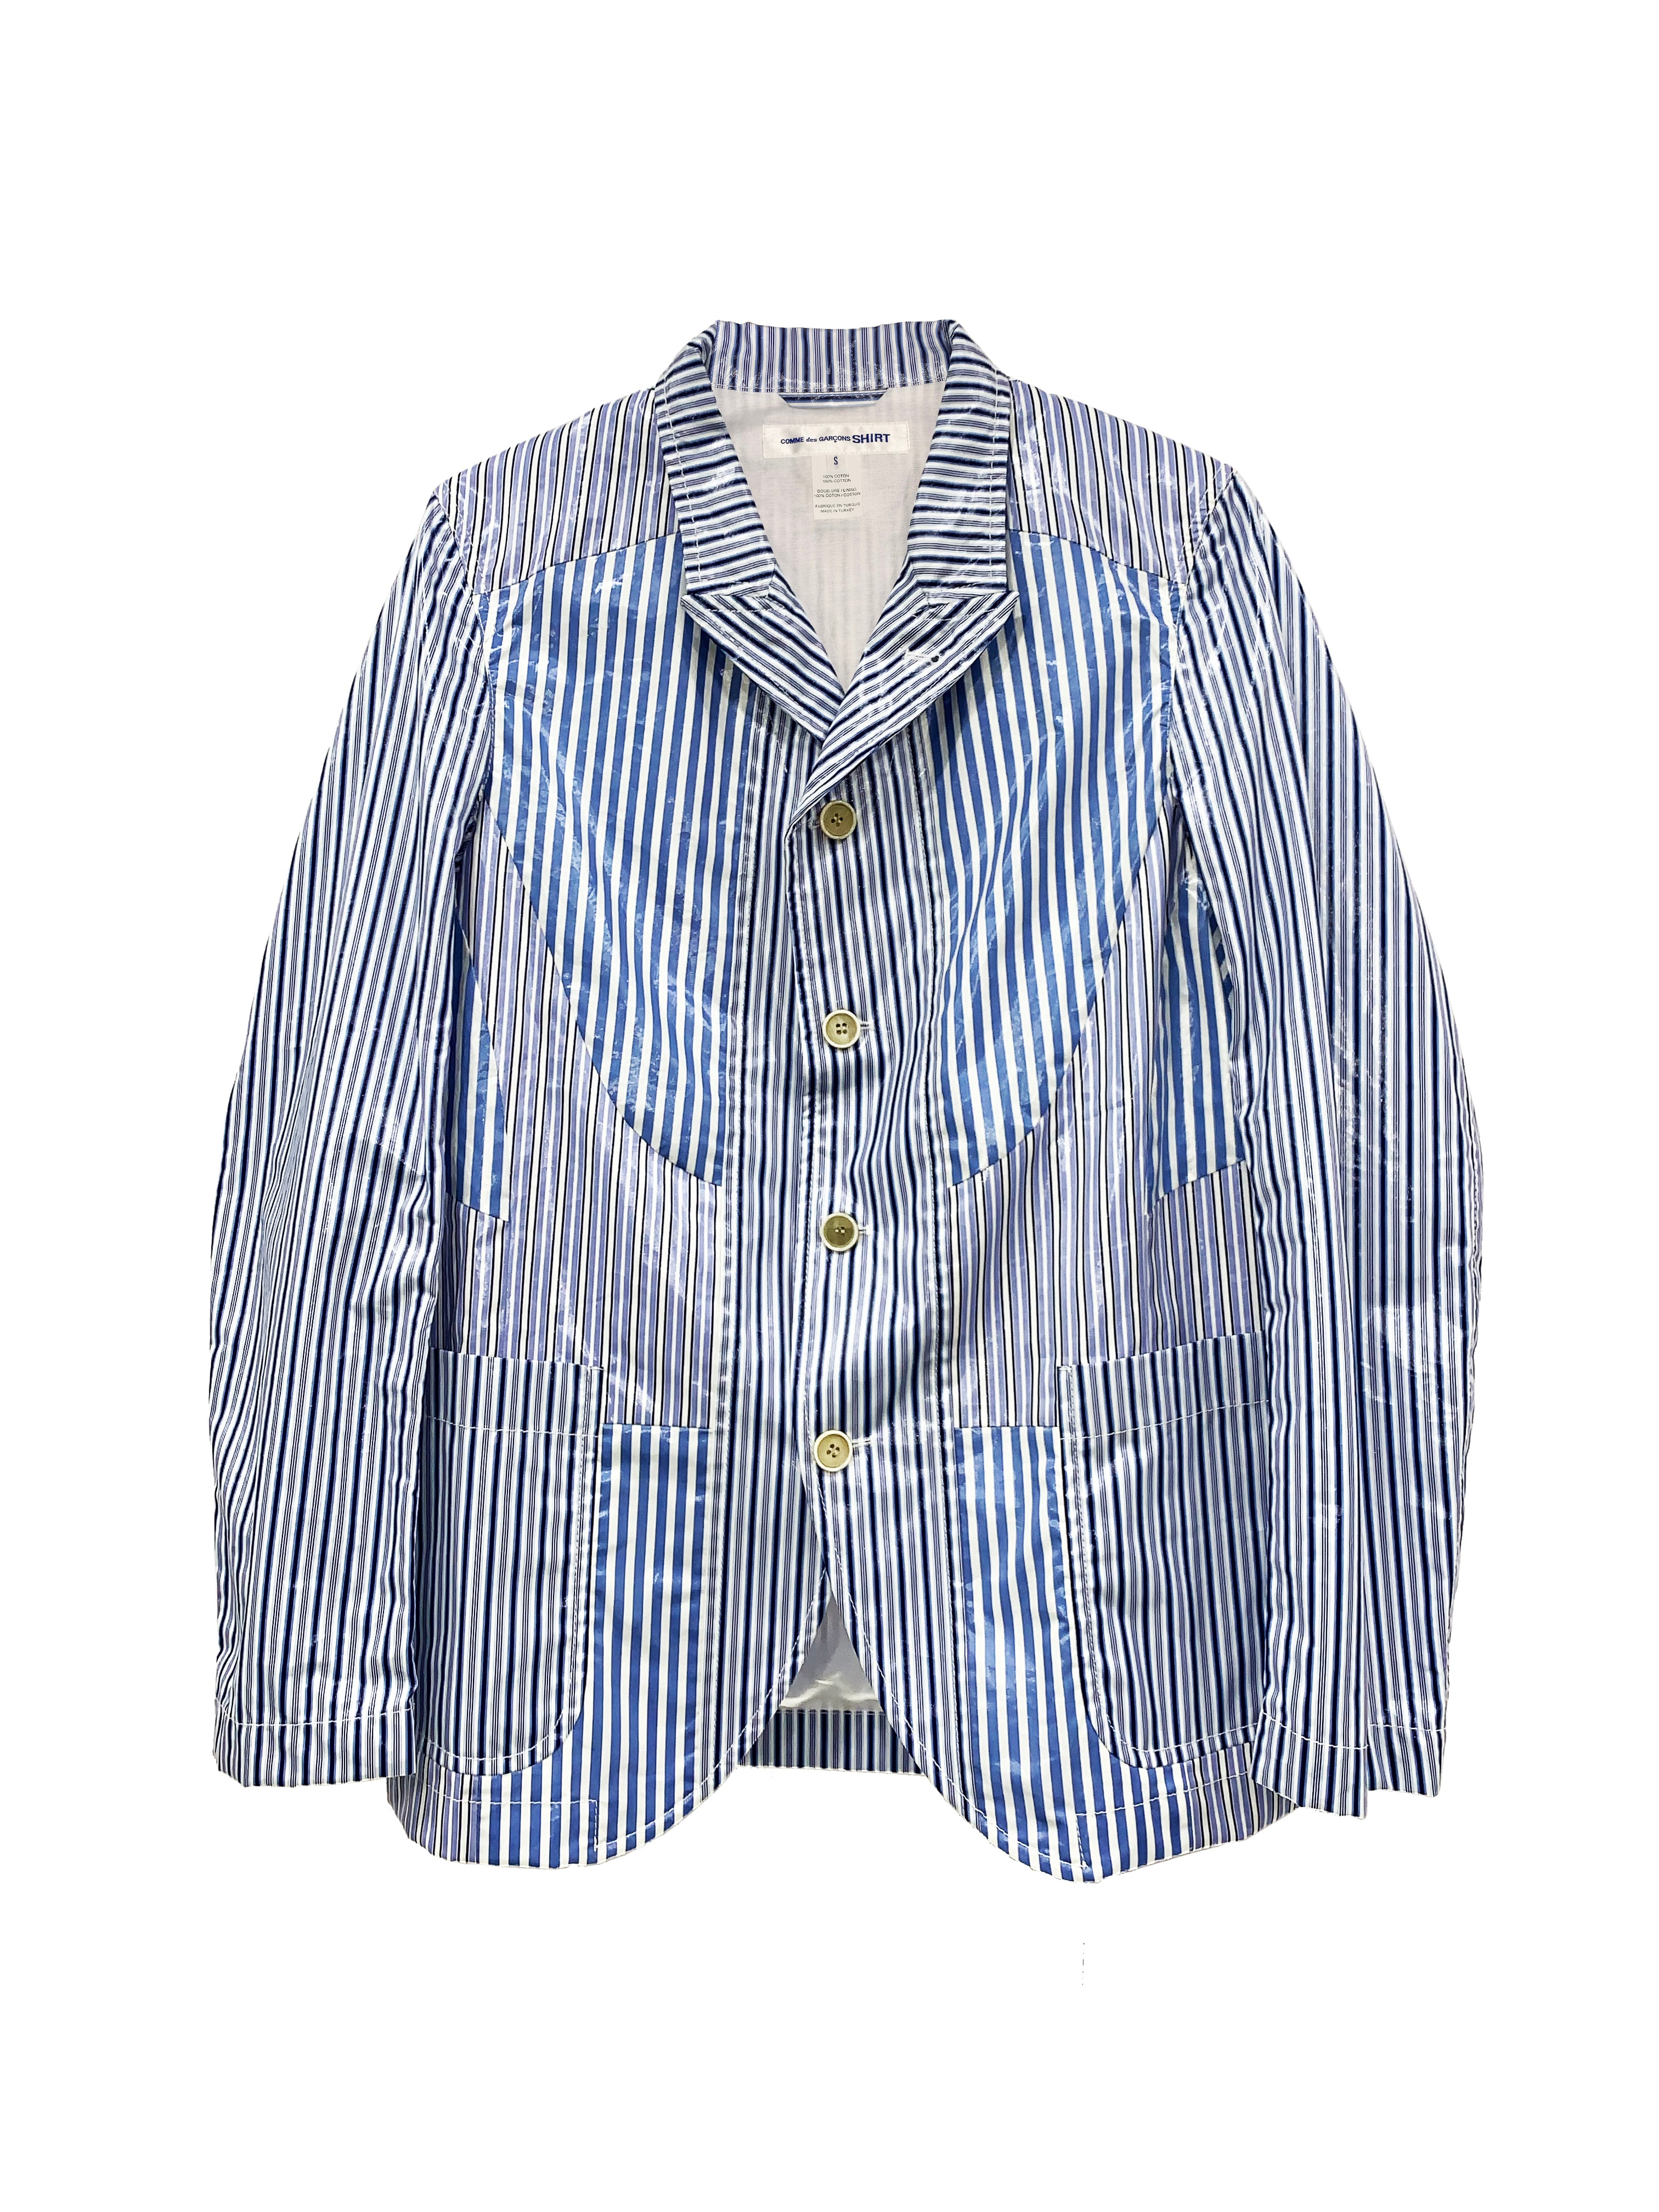 Patch Stripe Blazer OUTER COMME DES GARÇONS SHIRT - NOLM - Clothes Online - nolmau.com - Sydney-Australia Online Shopping